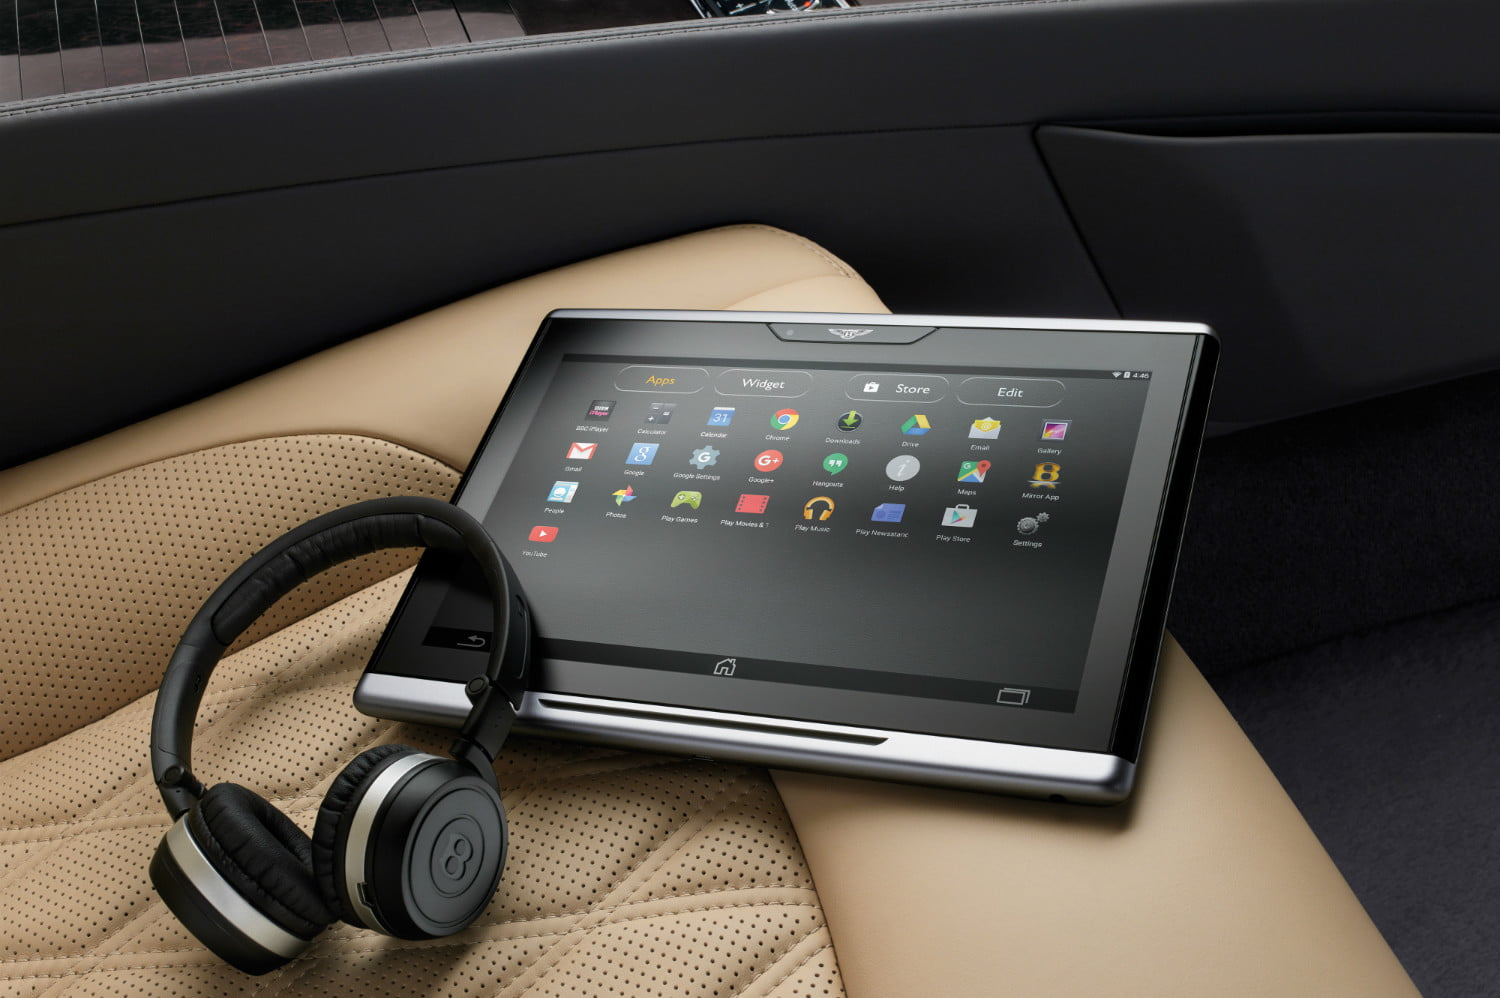 bentley super fast in car internet advanced connectivity 06